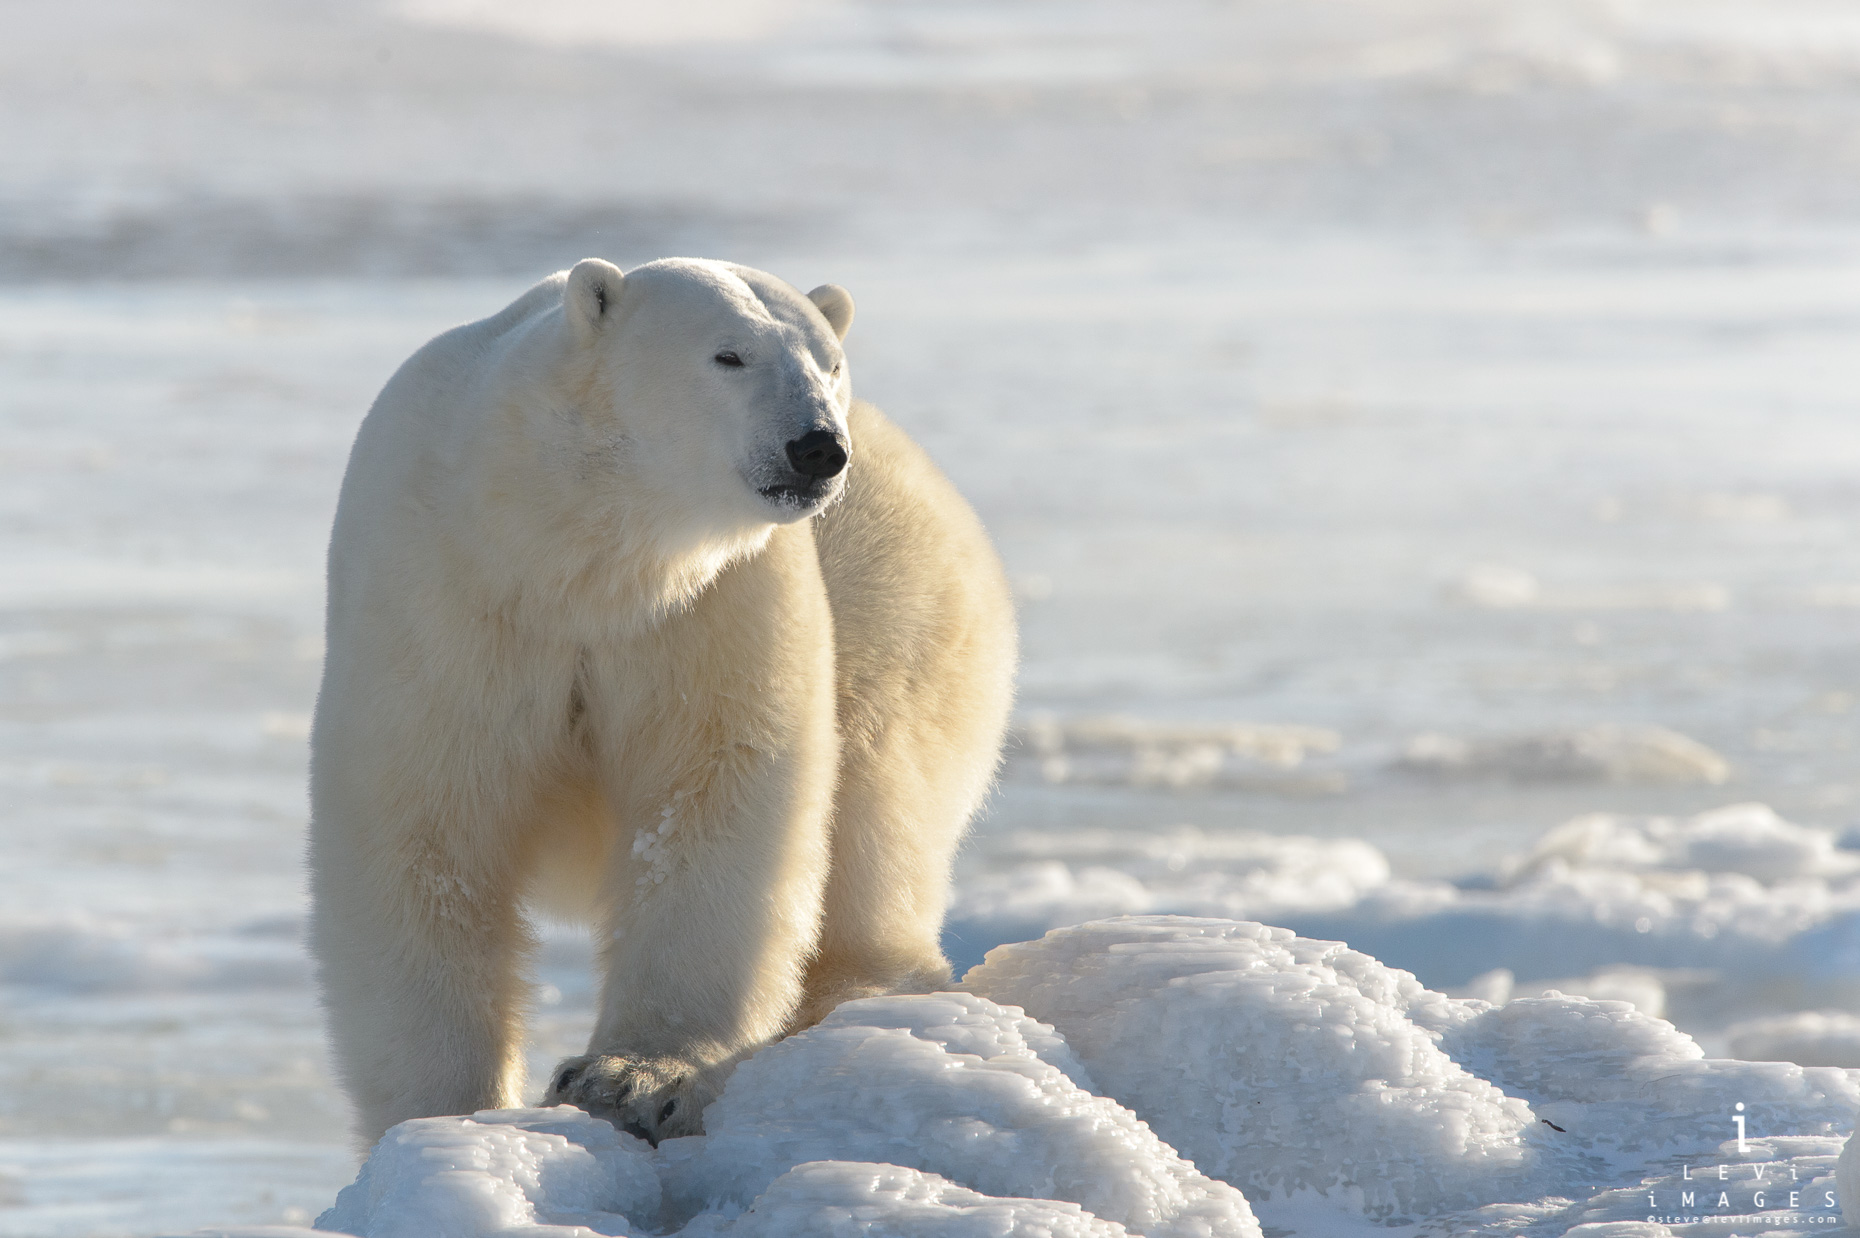 Polar bear (Ursus maritimus) on ice covered rocks. Hudson Bay, Manitoba, Canada